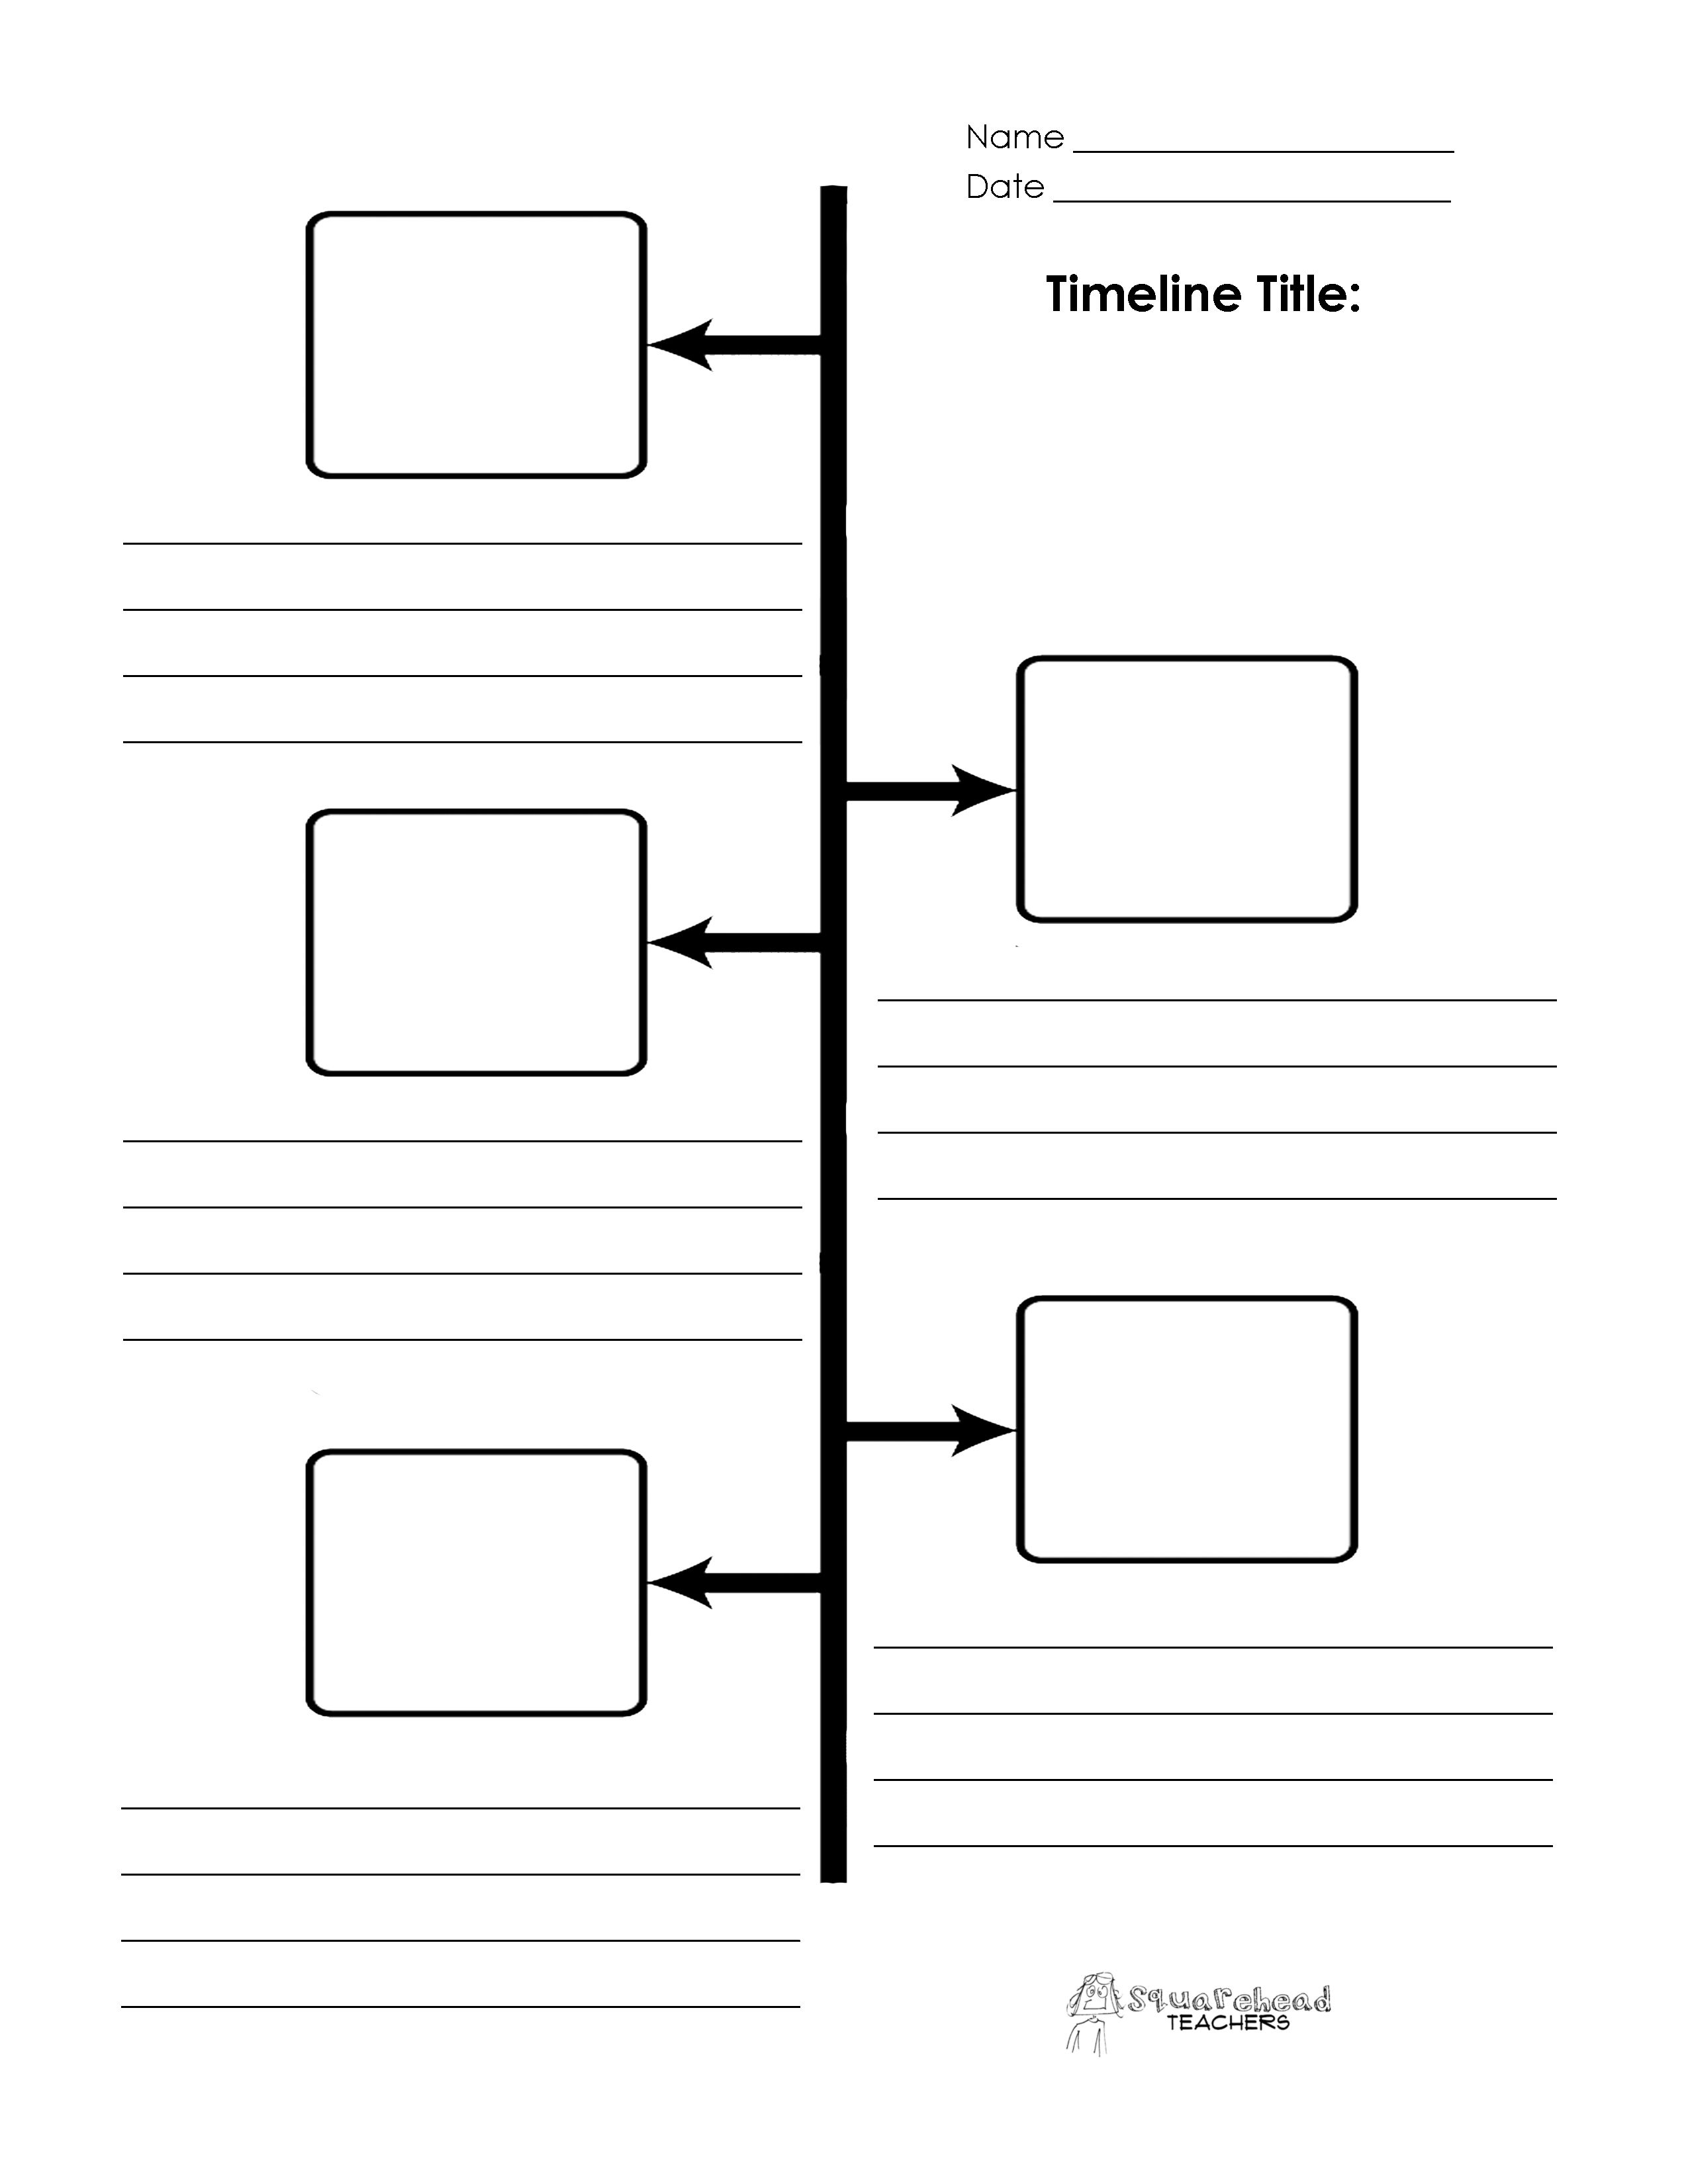 small resolution of timeline-boxes-and-lines.jpg 2